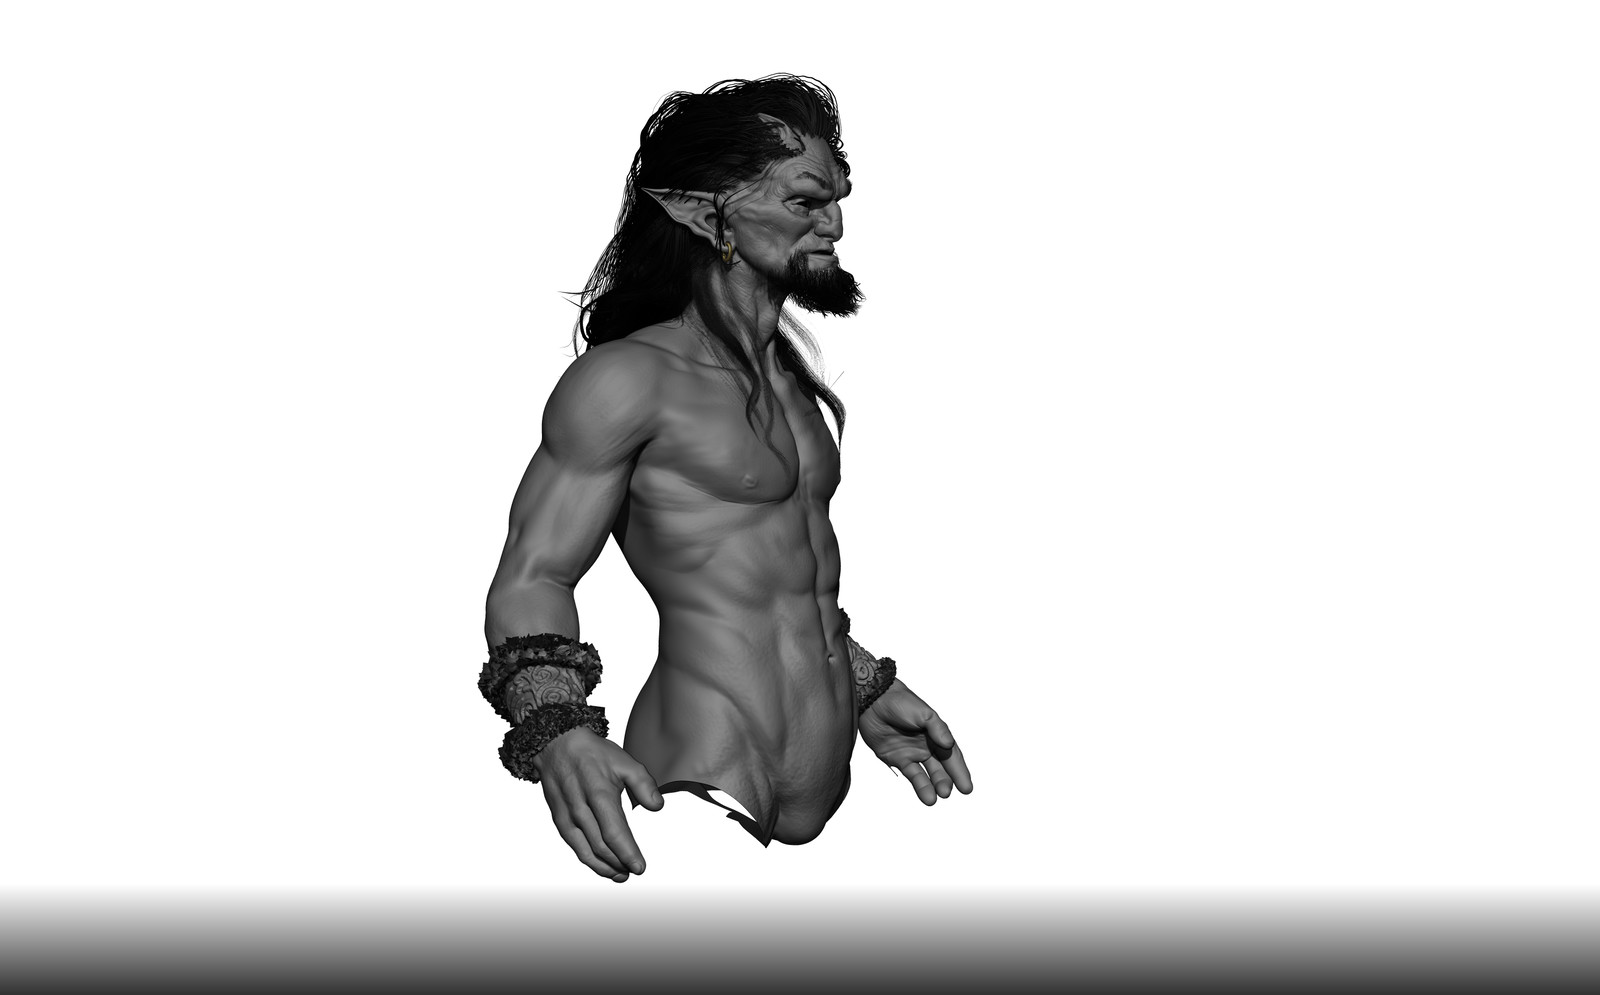 Centaur- skecth based  on the concept art by Rob Bliss